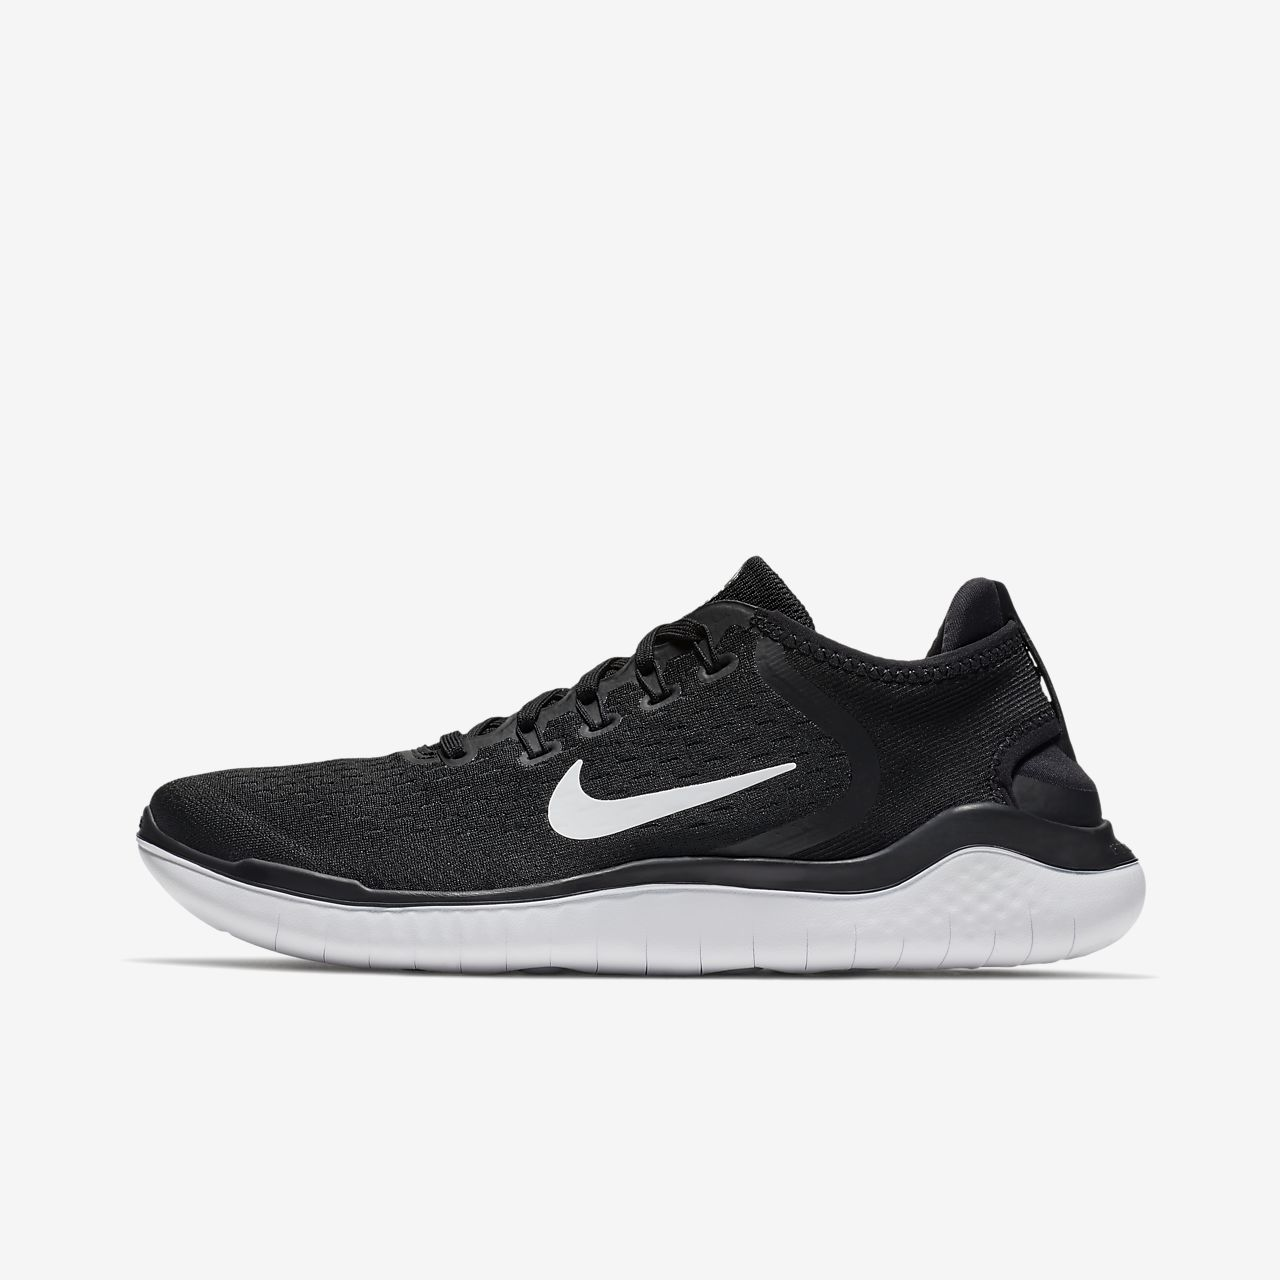 Nouveau Nike Free Run 2018 Mens